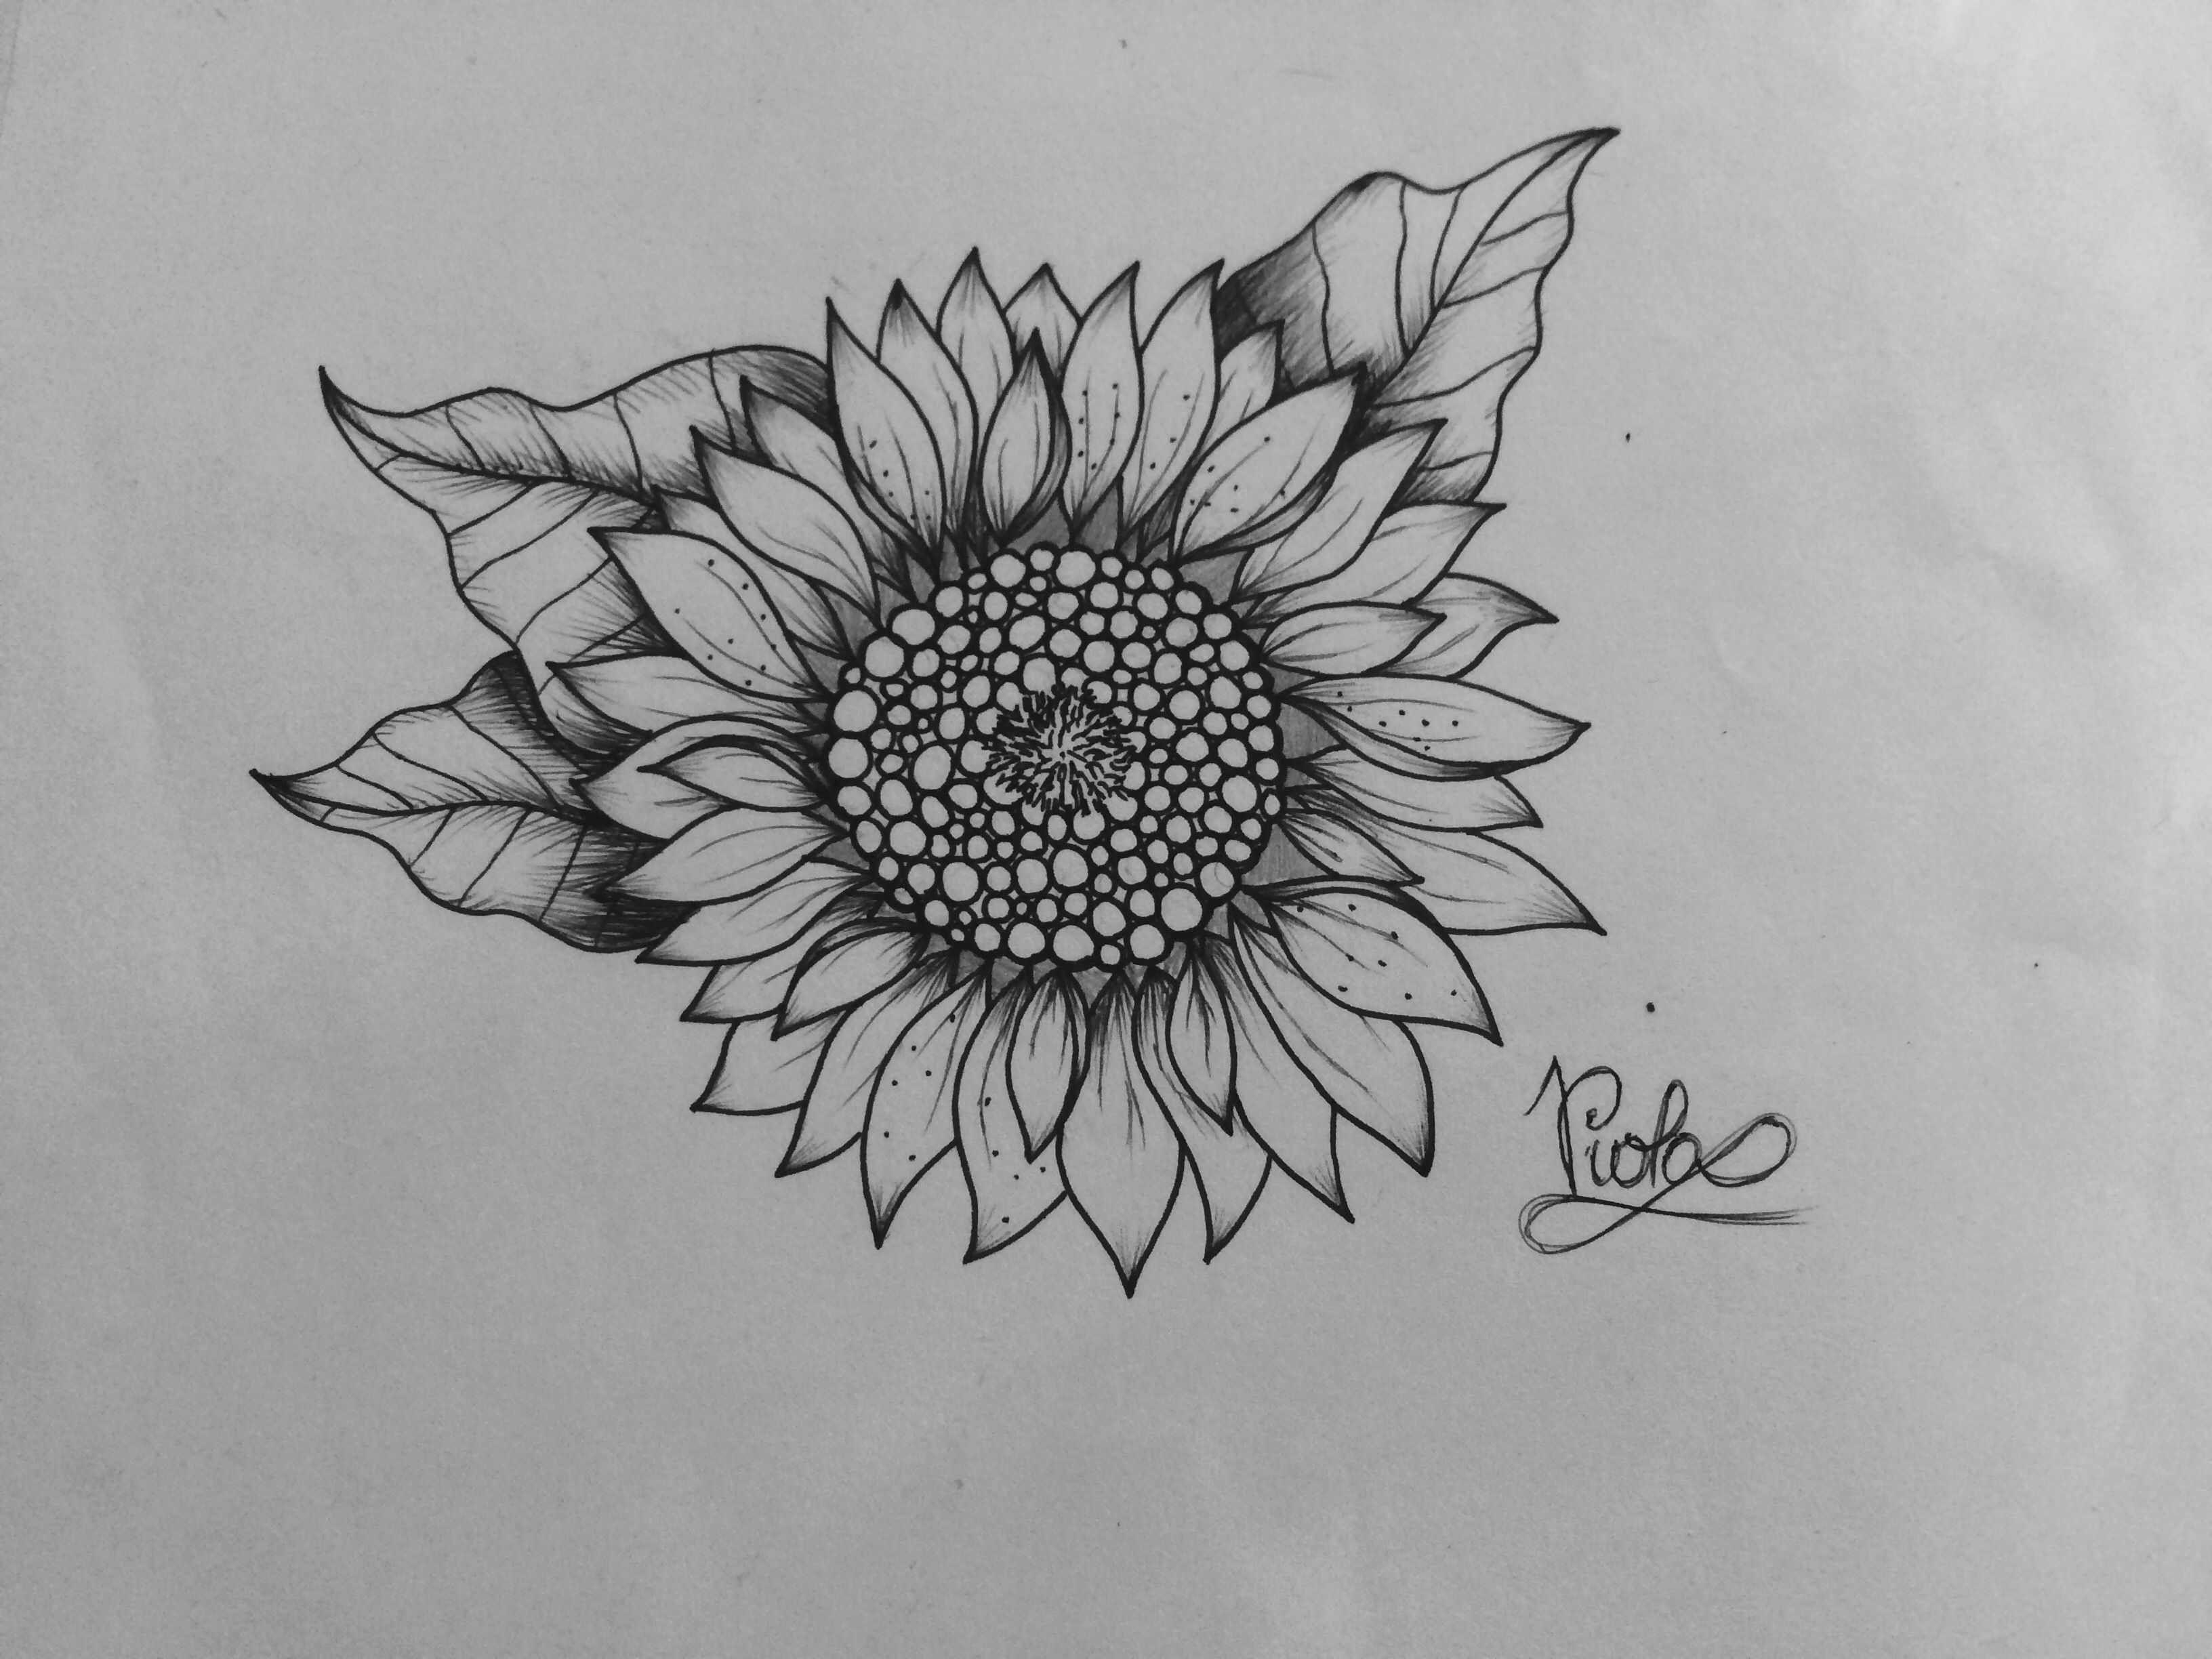 how to draw sunflowers how to draw sunflower free transparent clipart clipartkey sunflowers draw how to